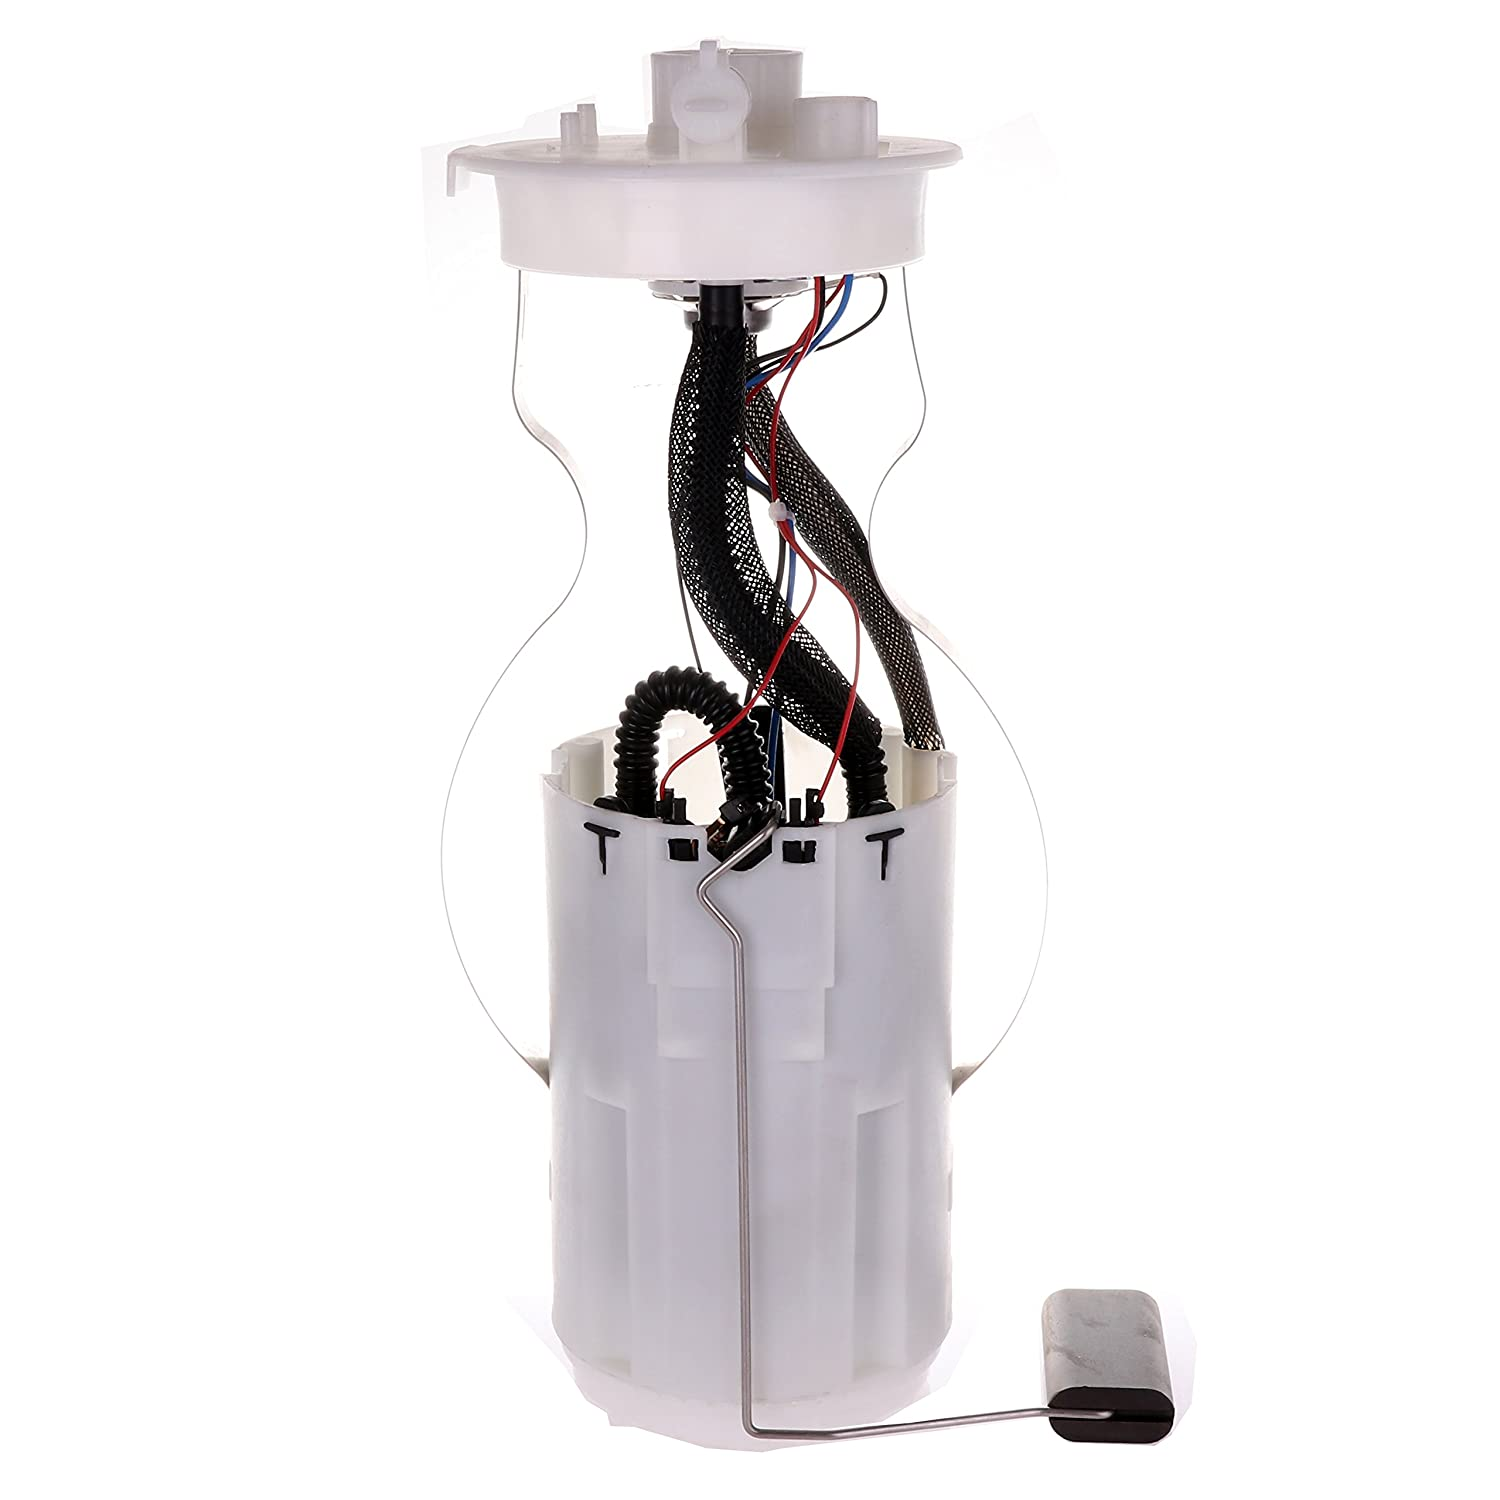 ROADFAR Fuel Pump Assembly Electrical Module with Sending Unit Fit for 1999 2000 2001 2002 Land Rover Discovery V8 4.0L 4.6L Compatible with E8478M